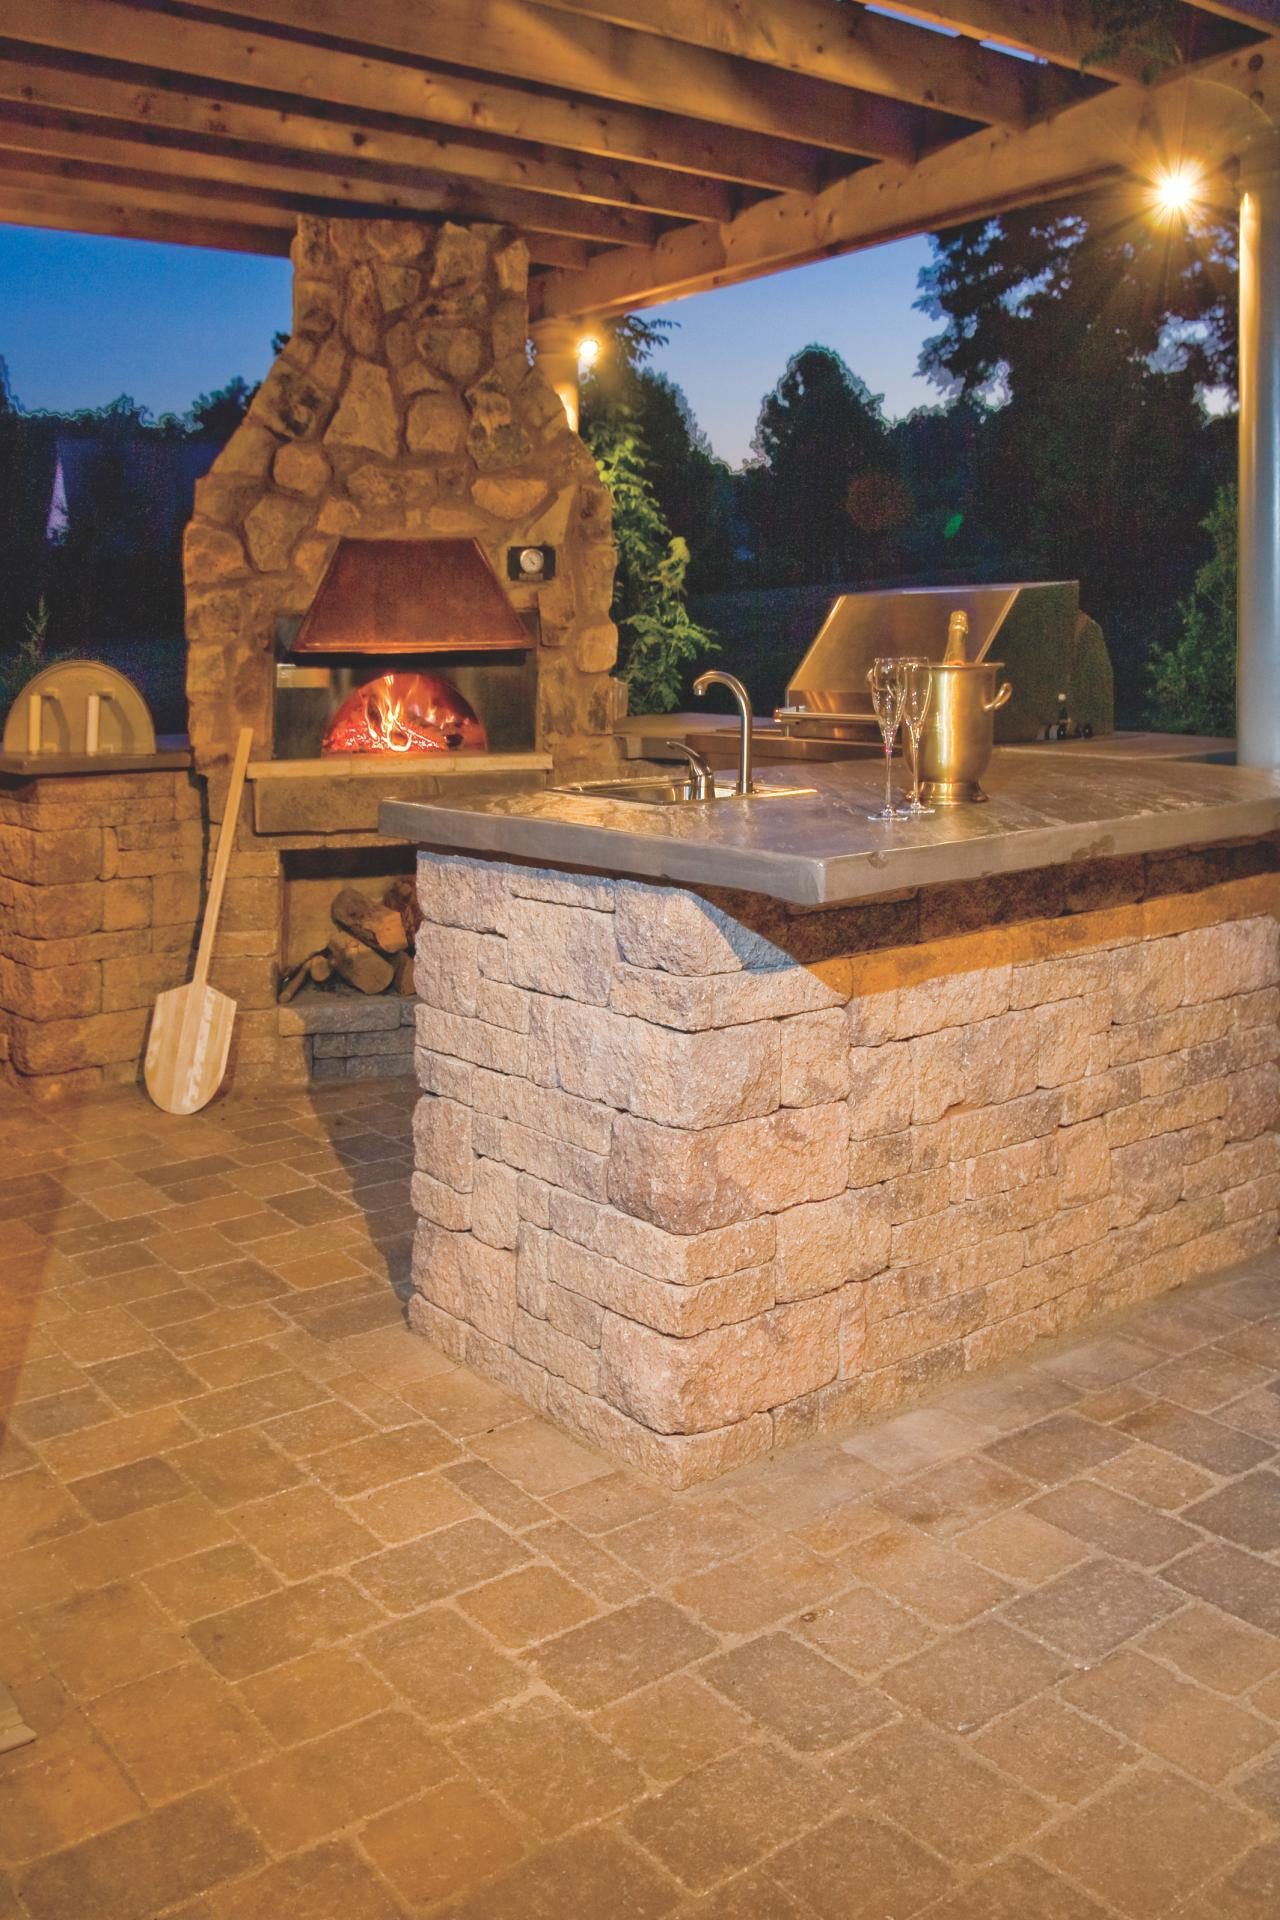 Outdoor Pizza Oven Fireplace Options and Ideas | HGTV on Outdoor Kitchen And Fireplace Ideas id=63221